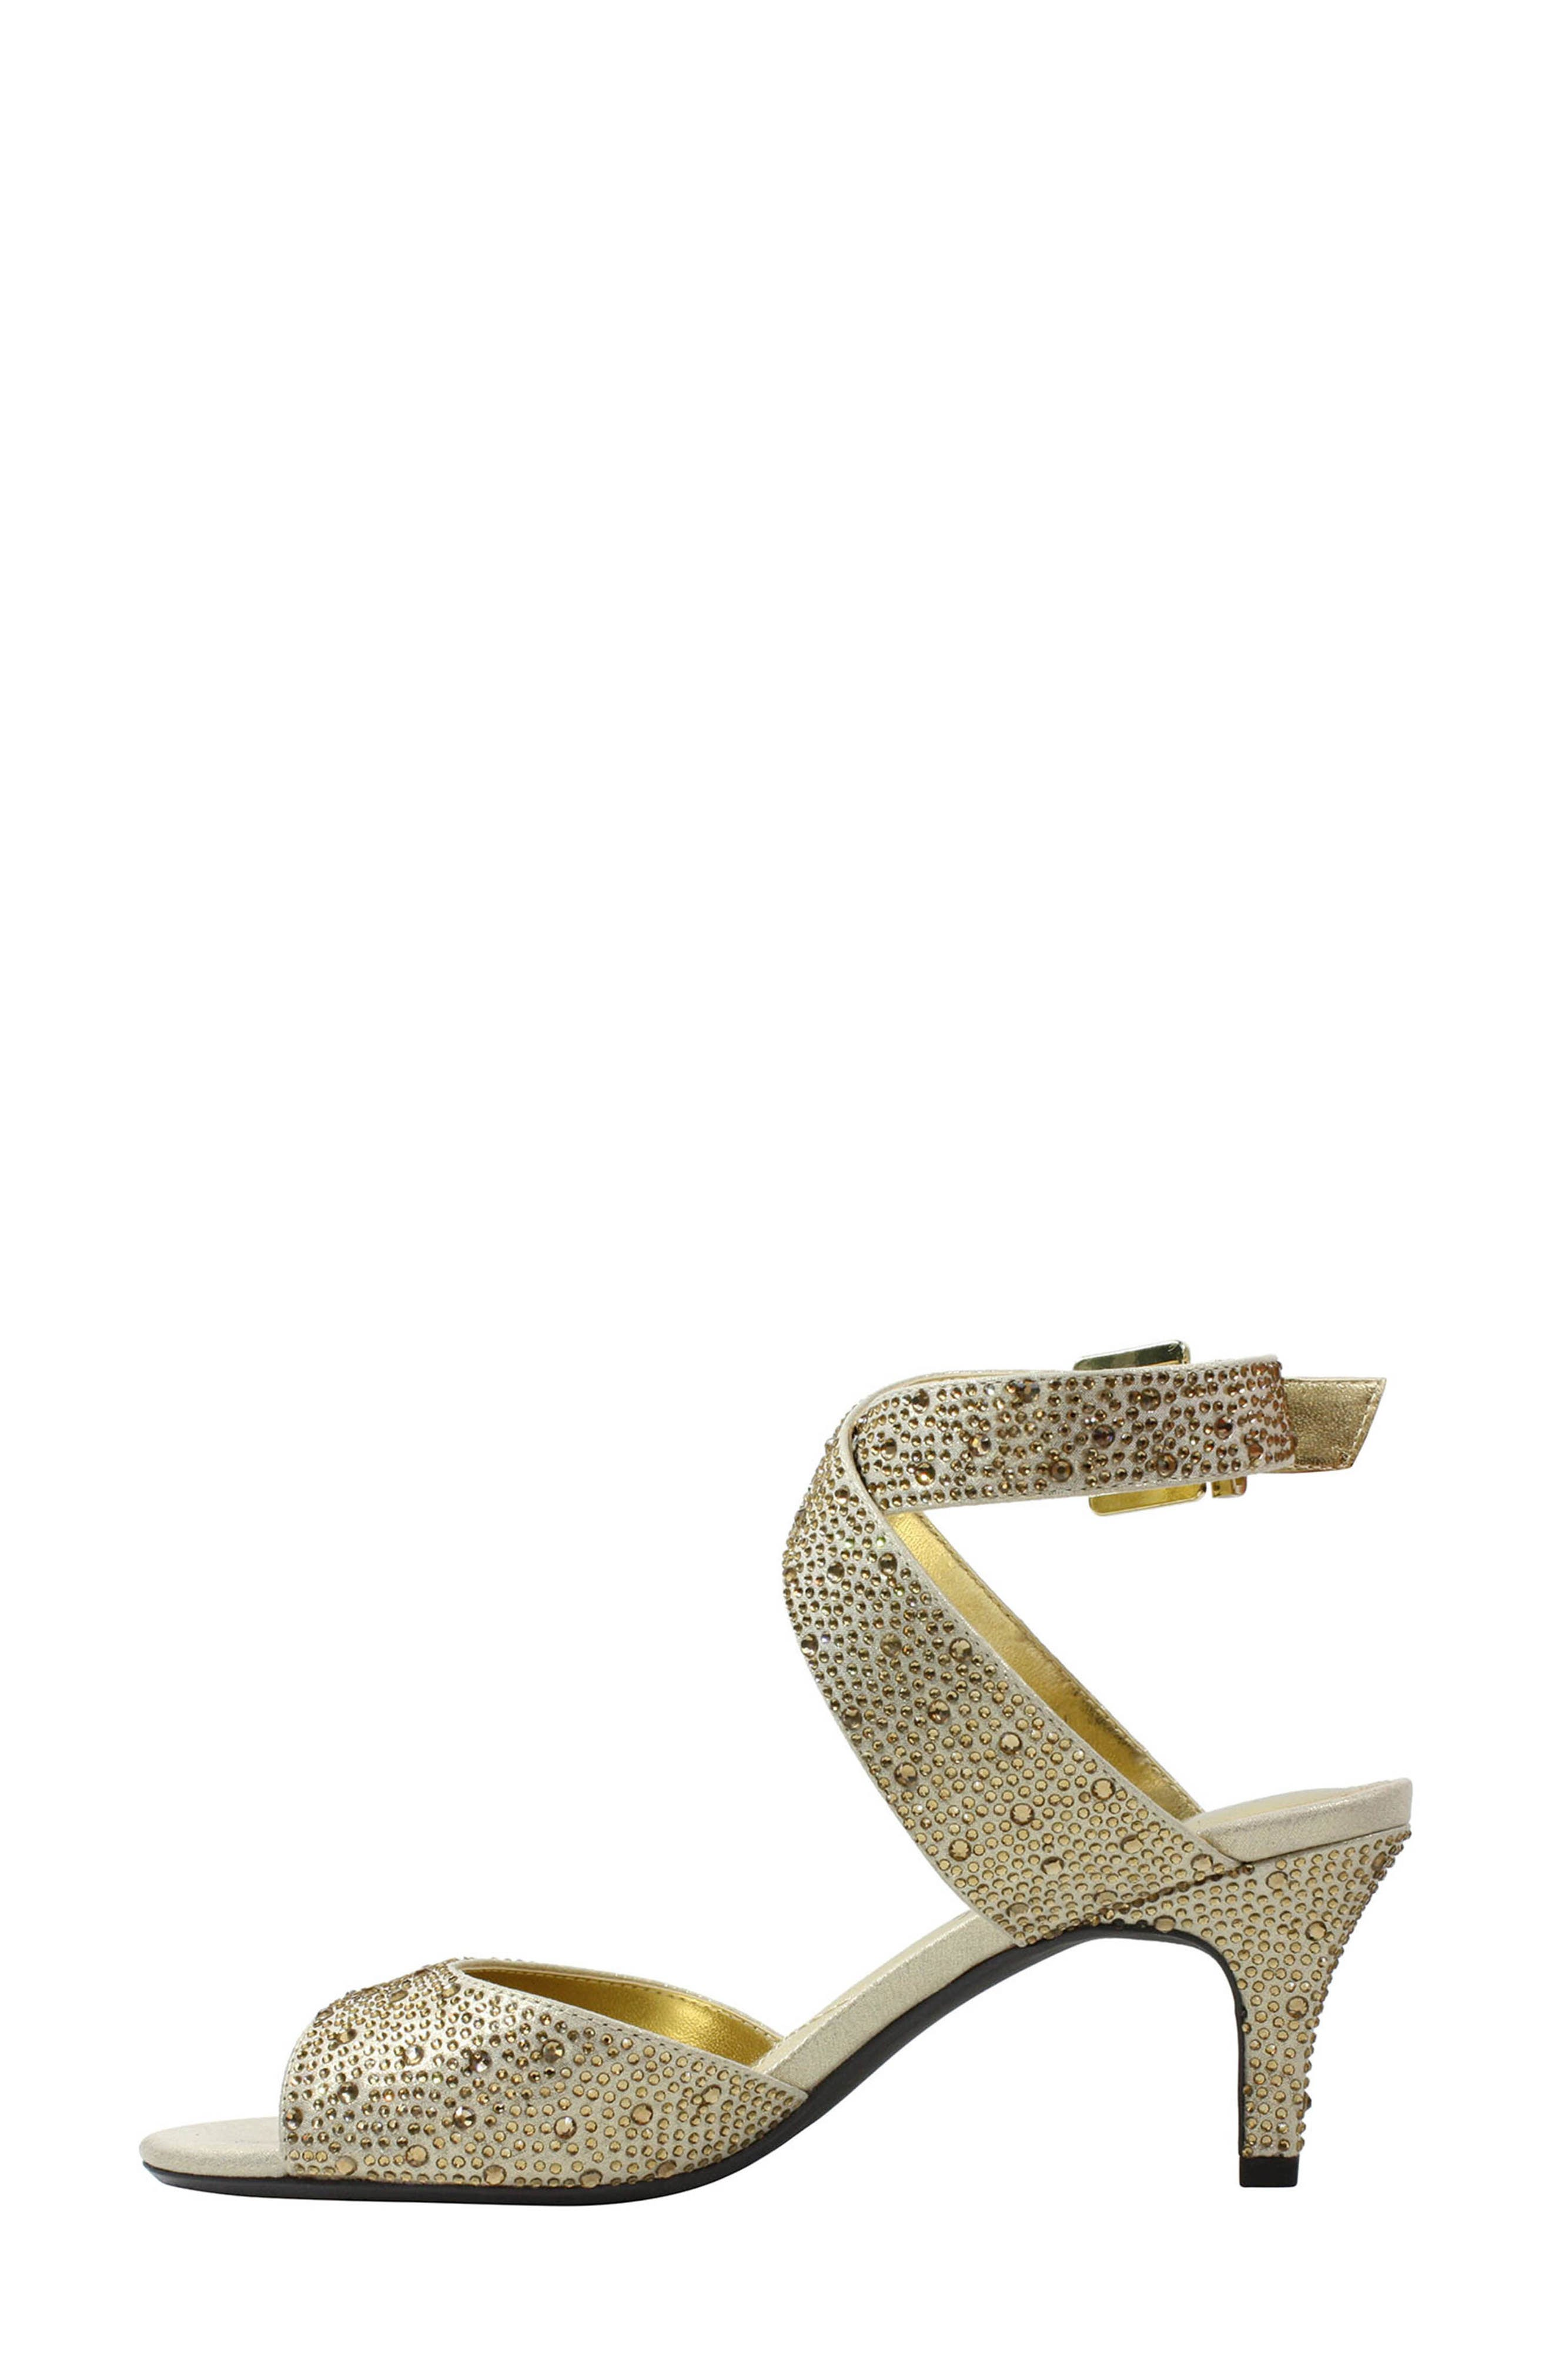 'Soncino' Ankle Strap Sandal,                             Alternate thumbnail 3, color,                             Gold Fabric